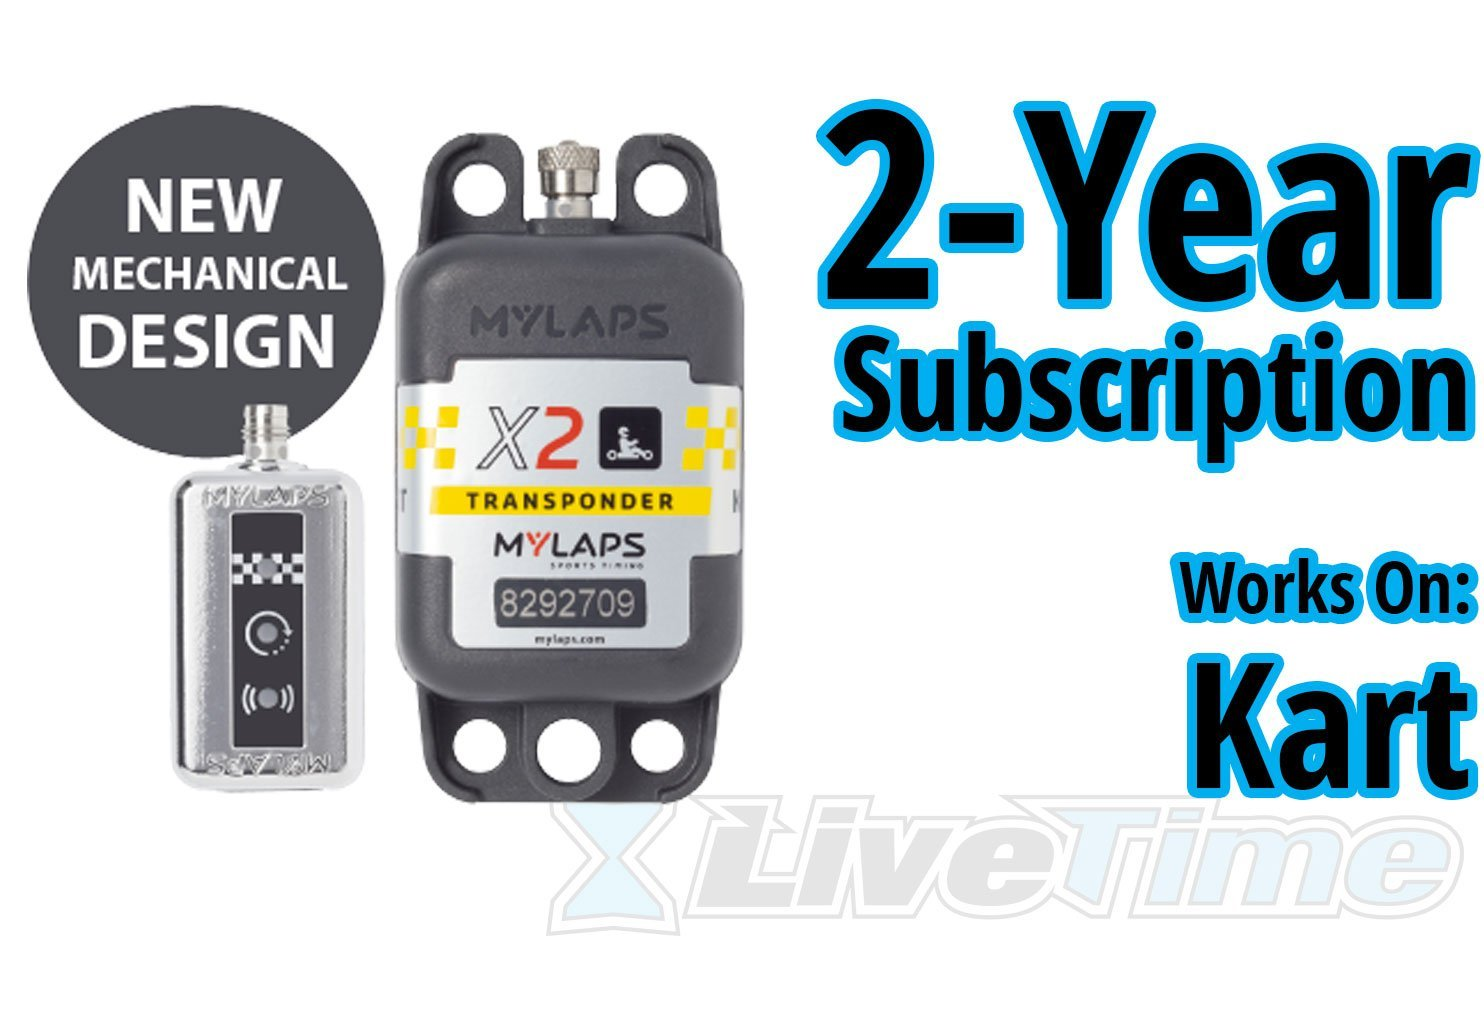 MyLaps X2 Transponder, Rechargeable, for Karting, includes 2-Year Subscription